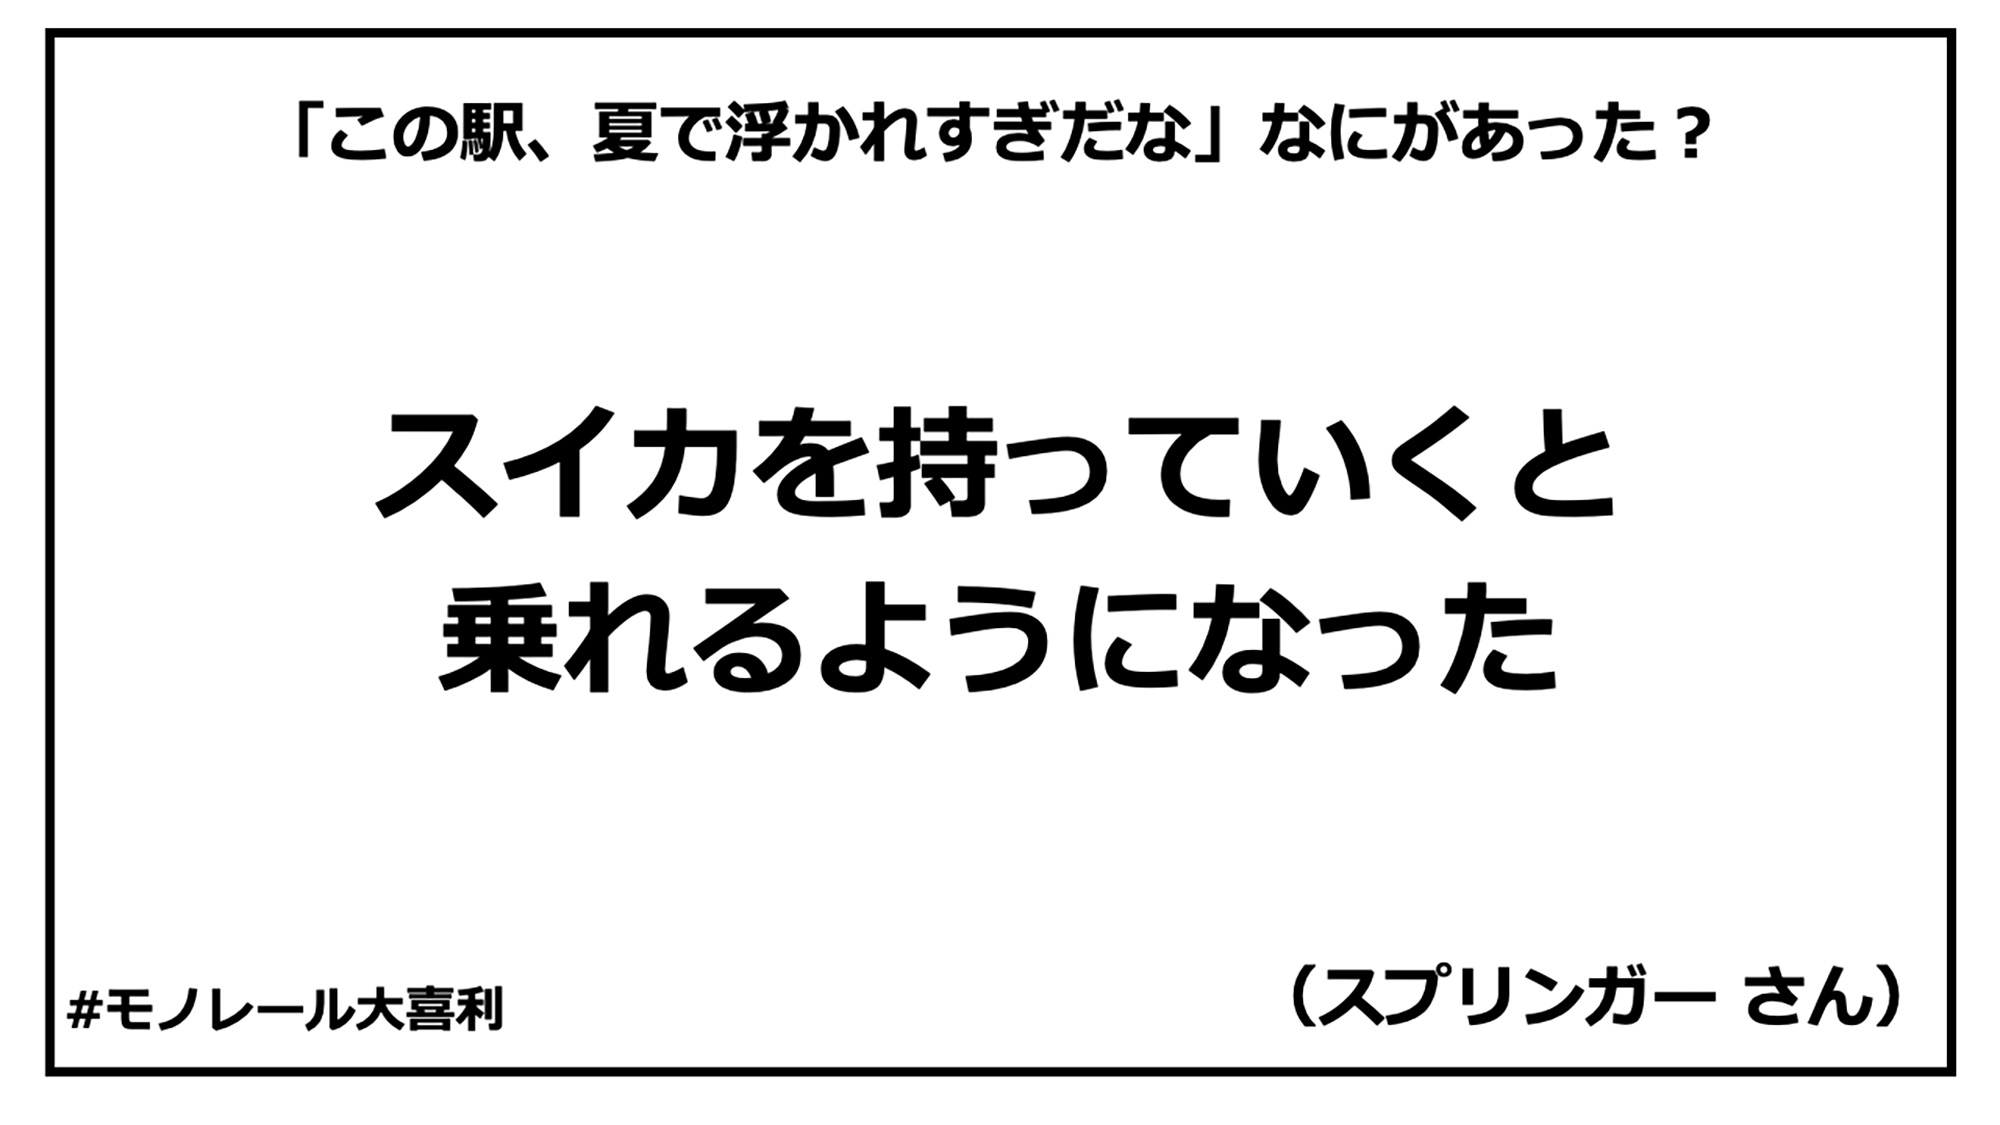 ogiri_answer_26_2.jpg